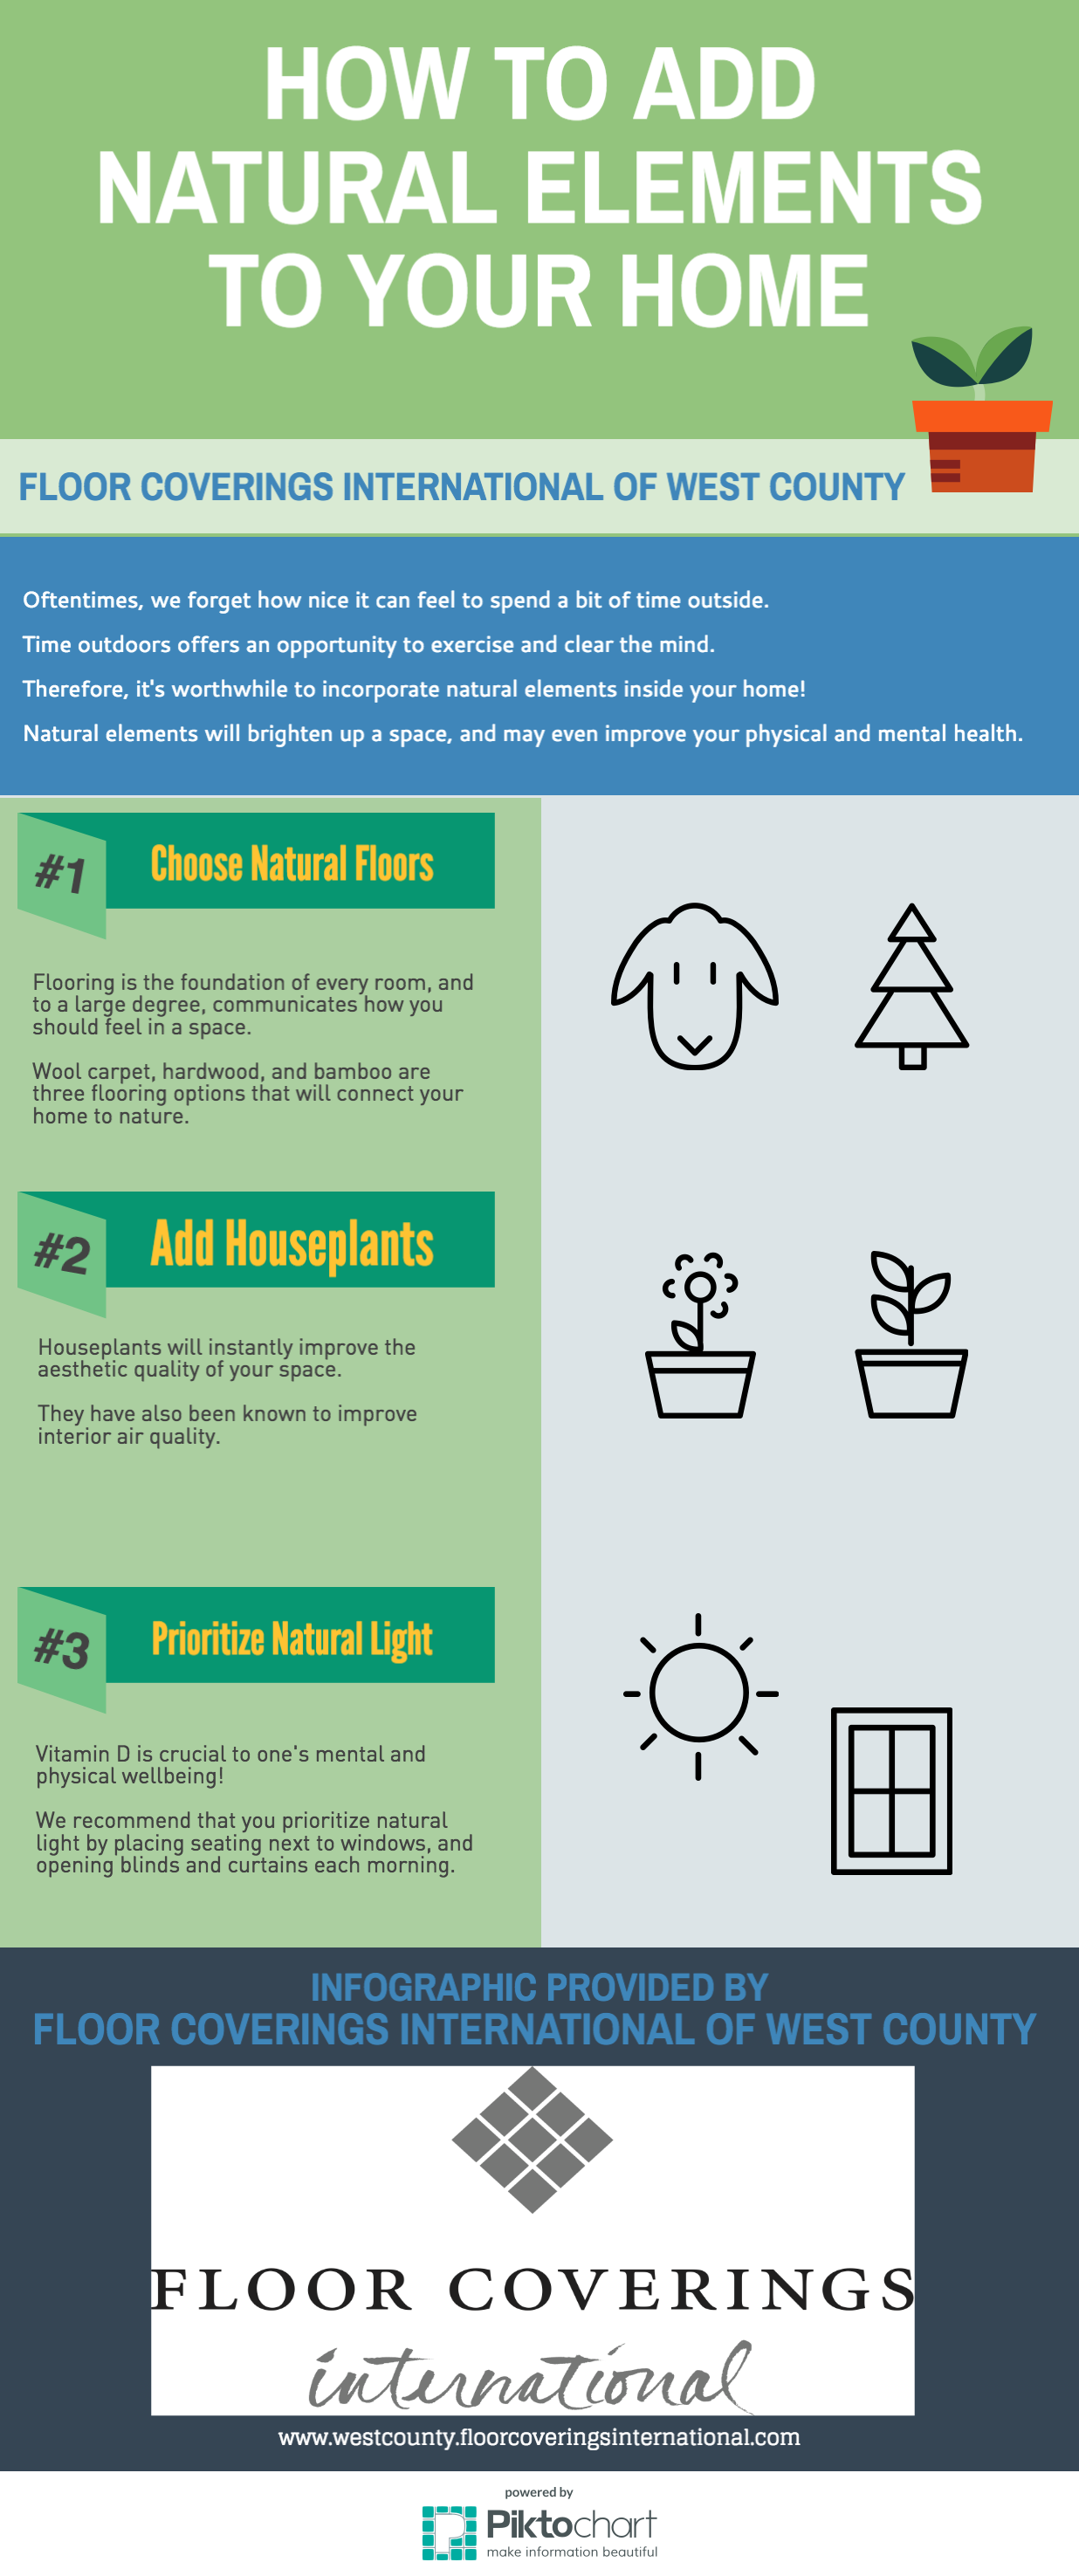 How to Add Natural Elements to Your Home